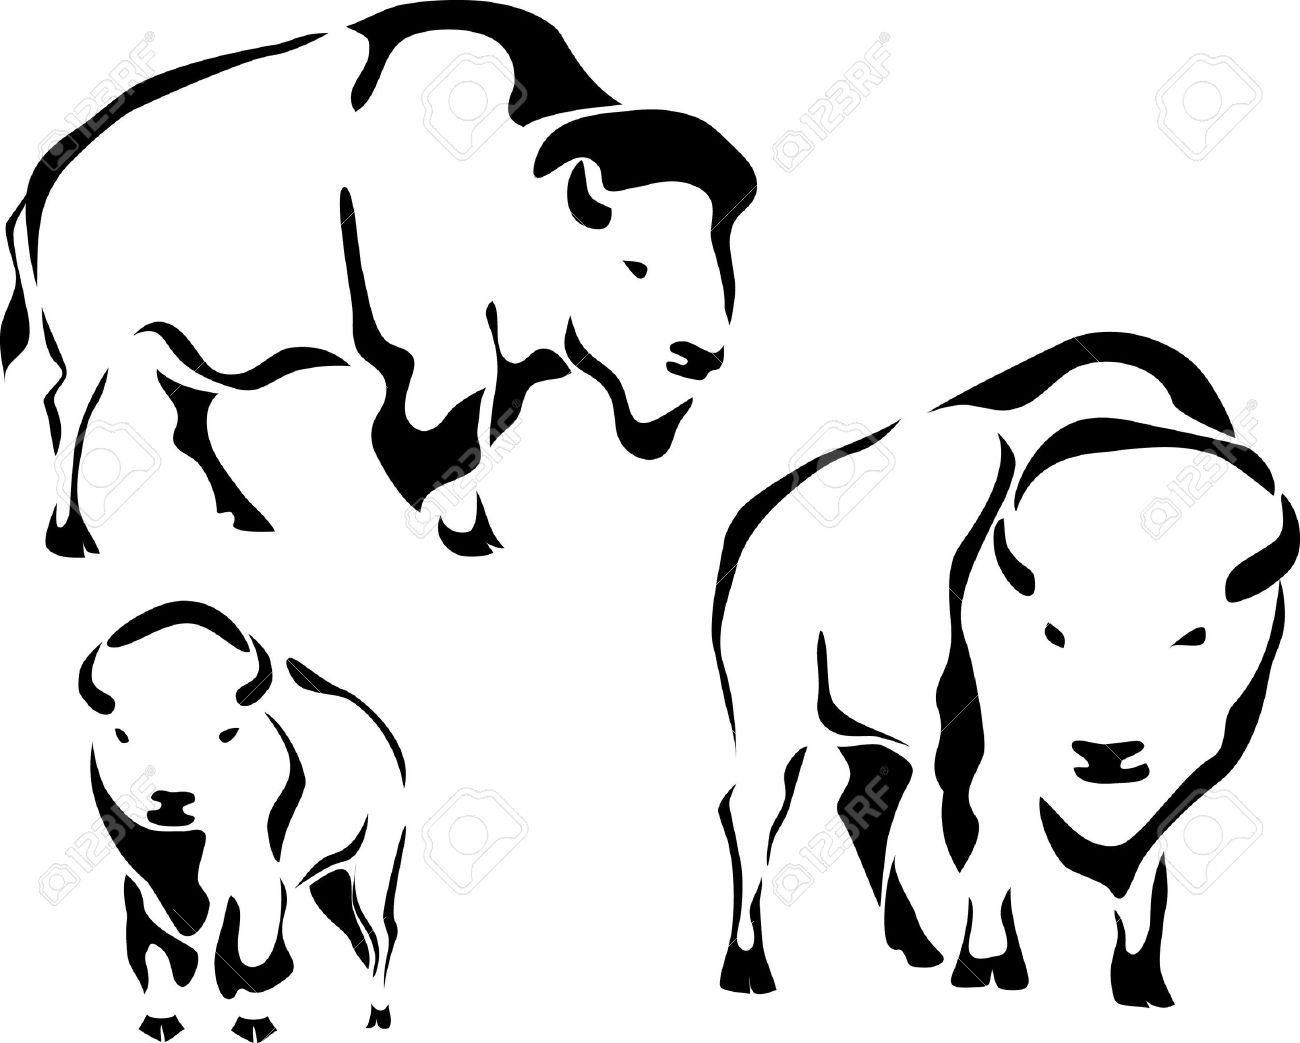 Bison clipart outline.